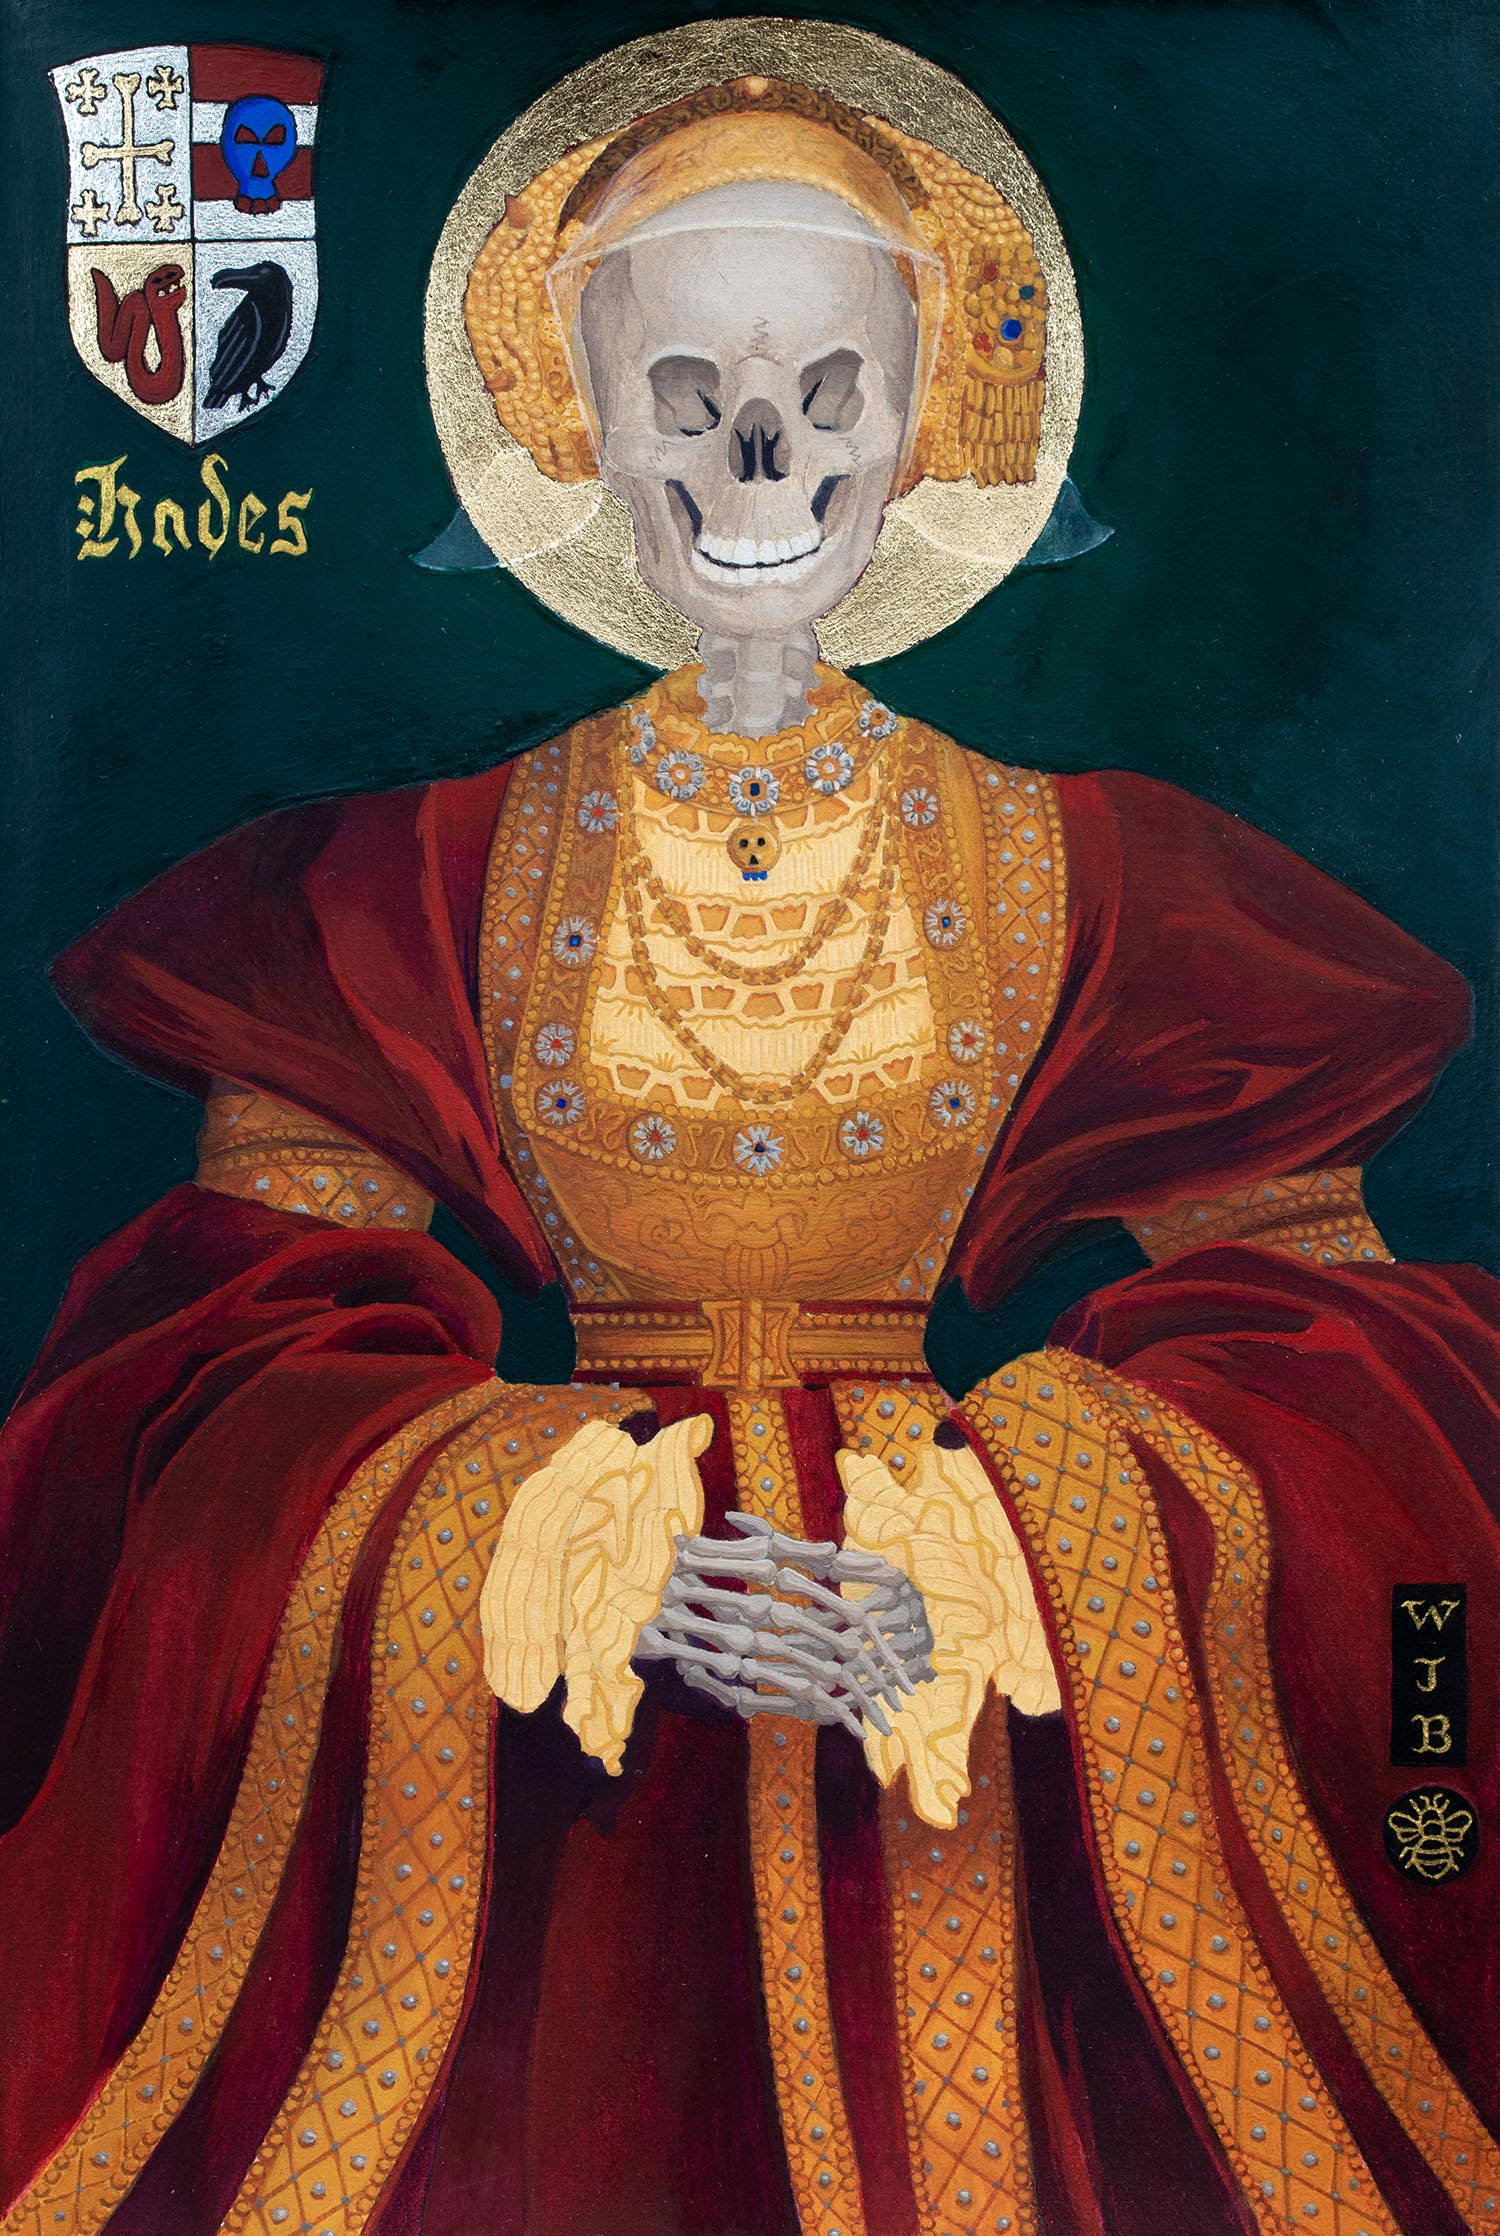 Anne of Hades